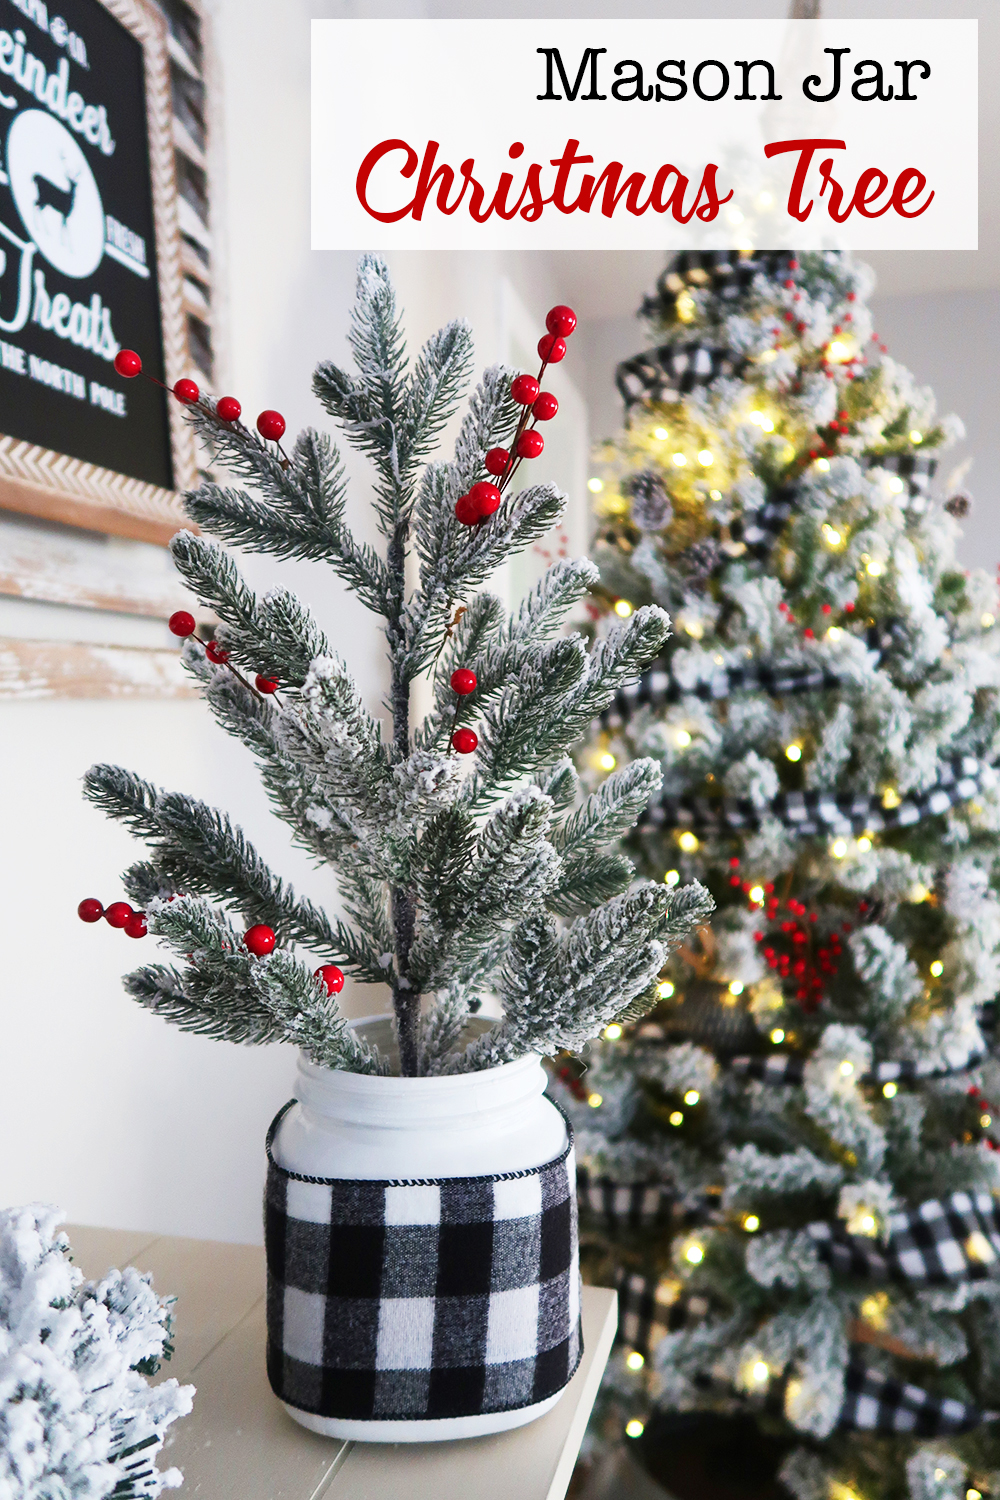 Mason Jar Christmas Tree Weekend Craft